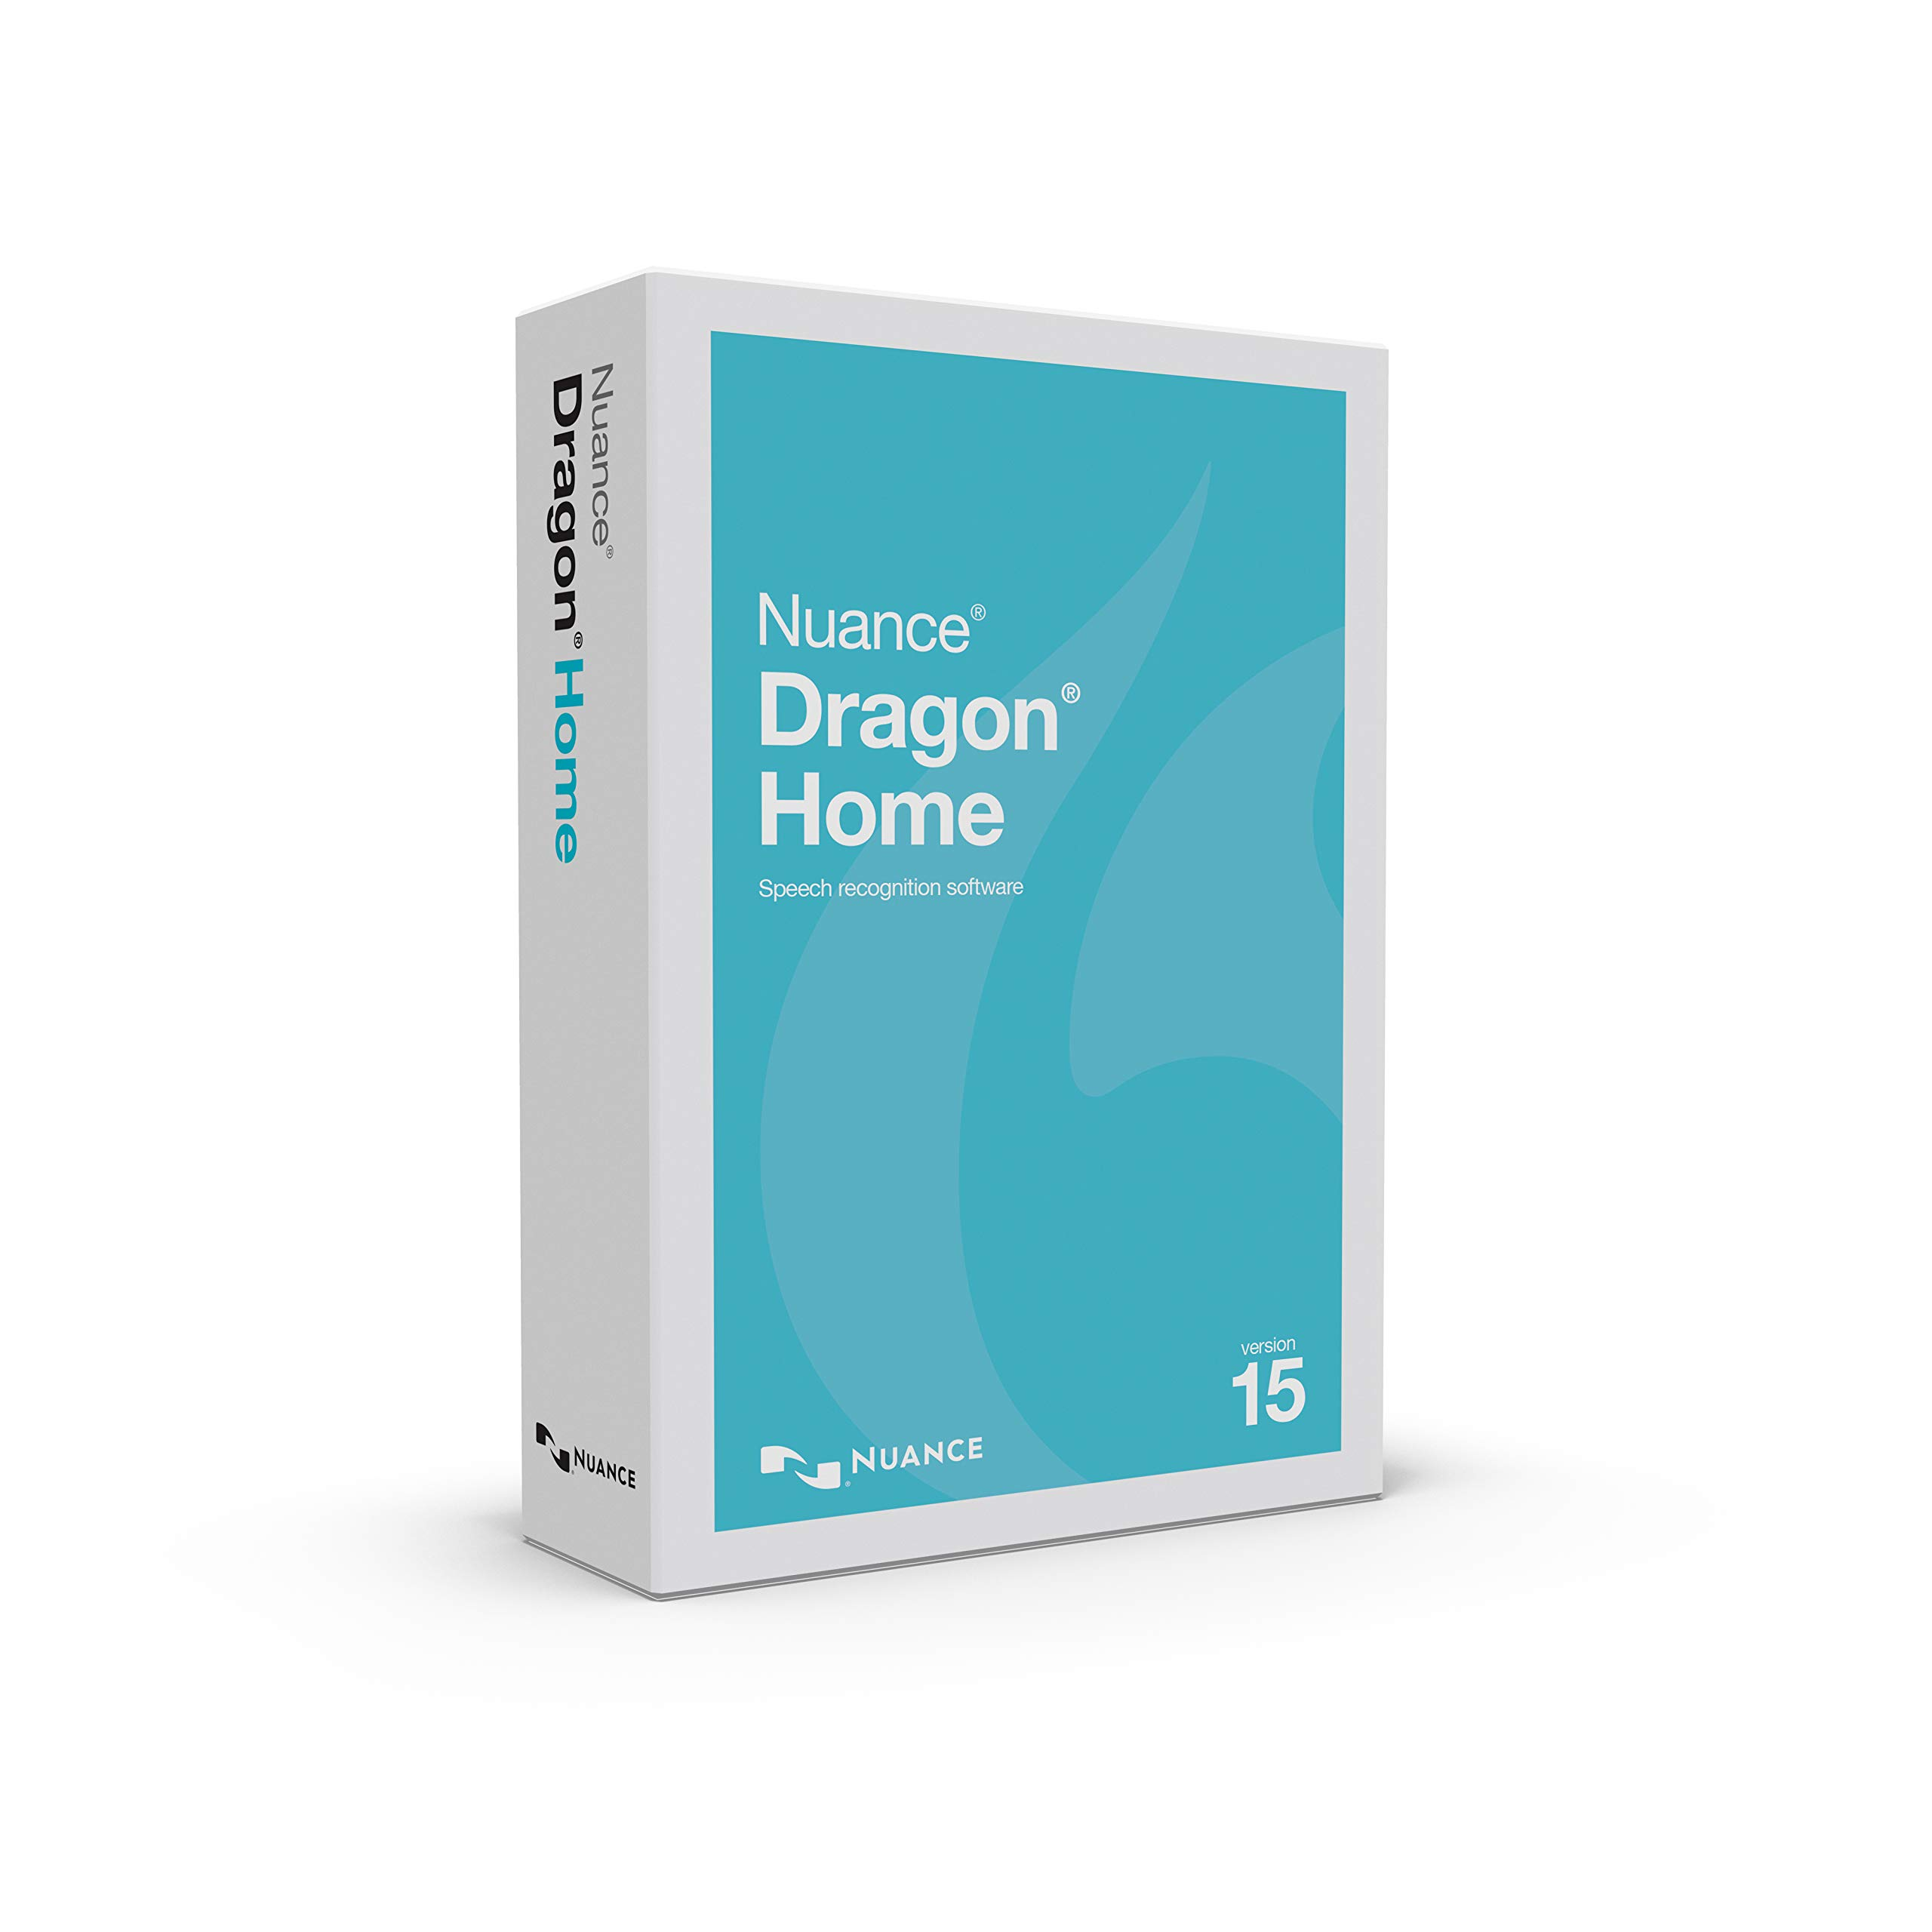 Dragon Home 15.0 by Nuance Dragon